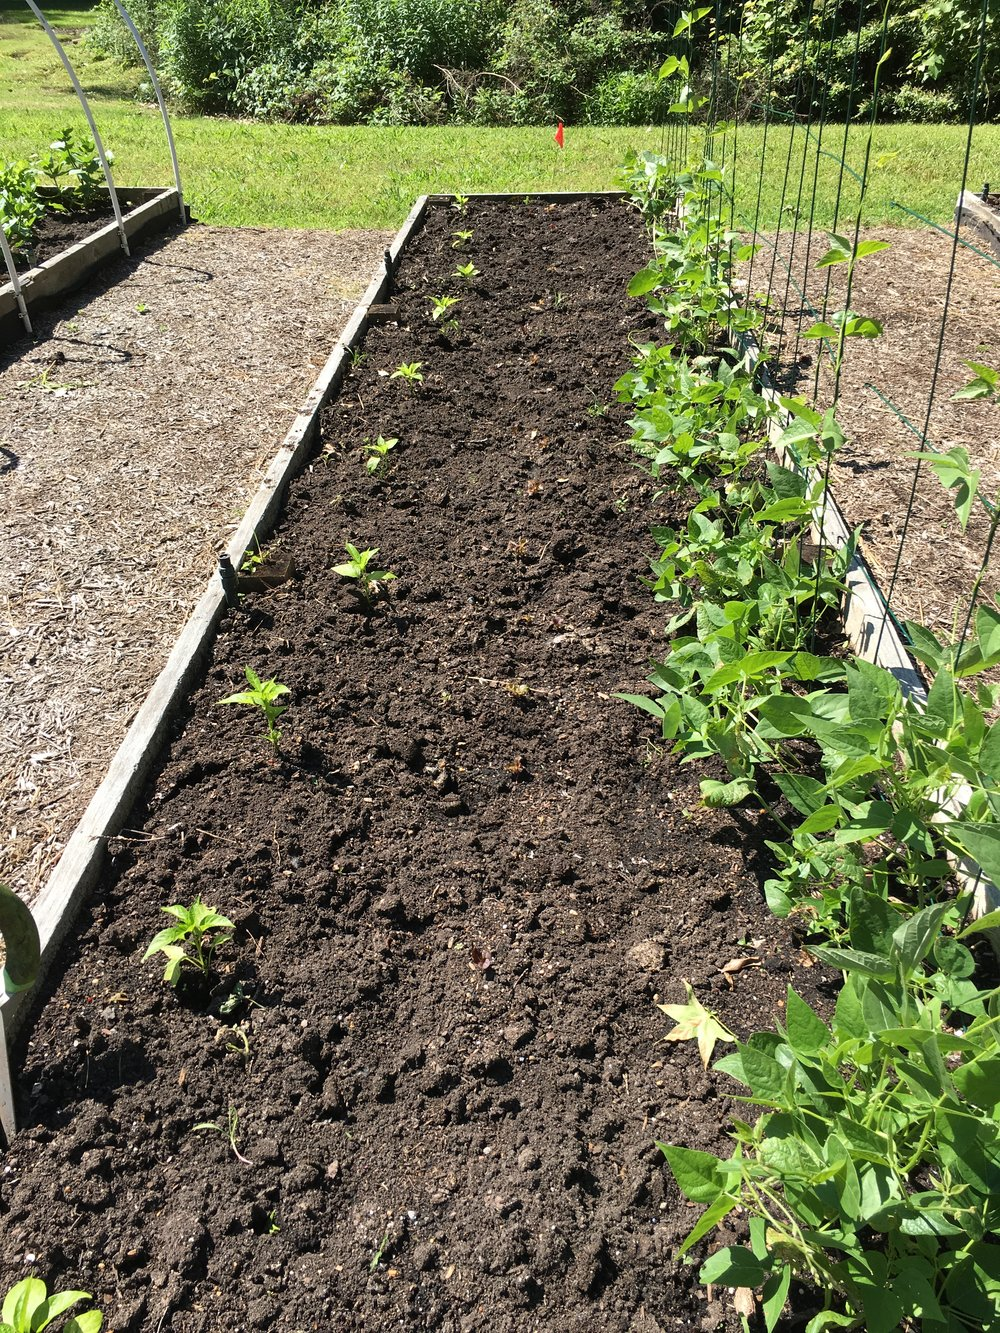 An interplanted bed of peppers, lettuce, and pole beans